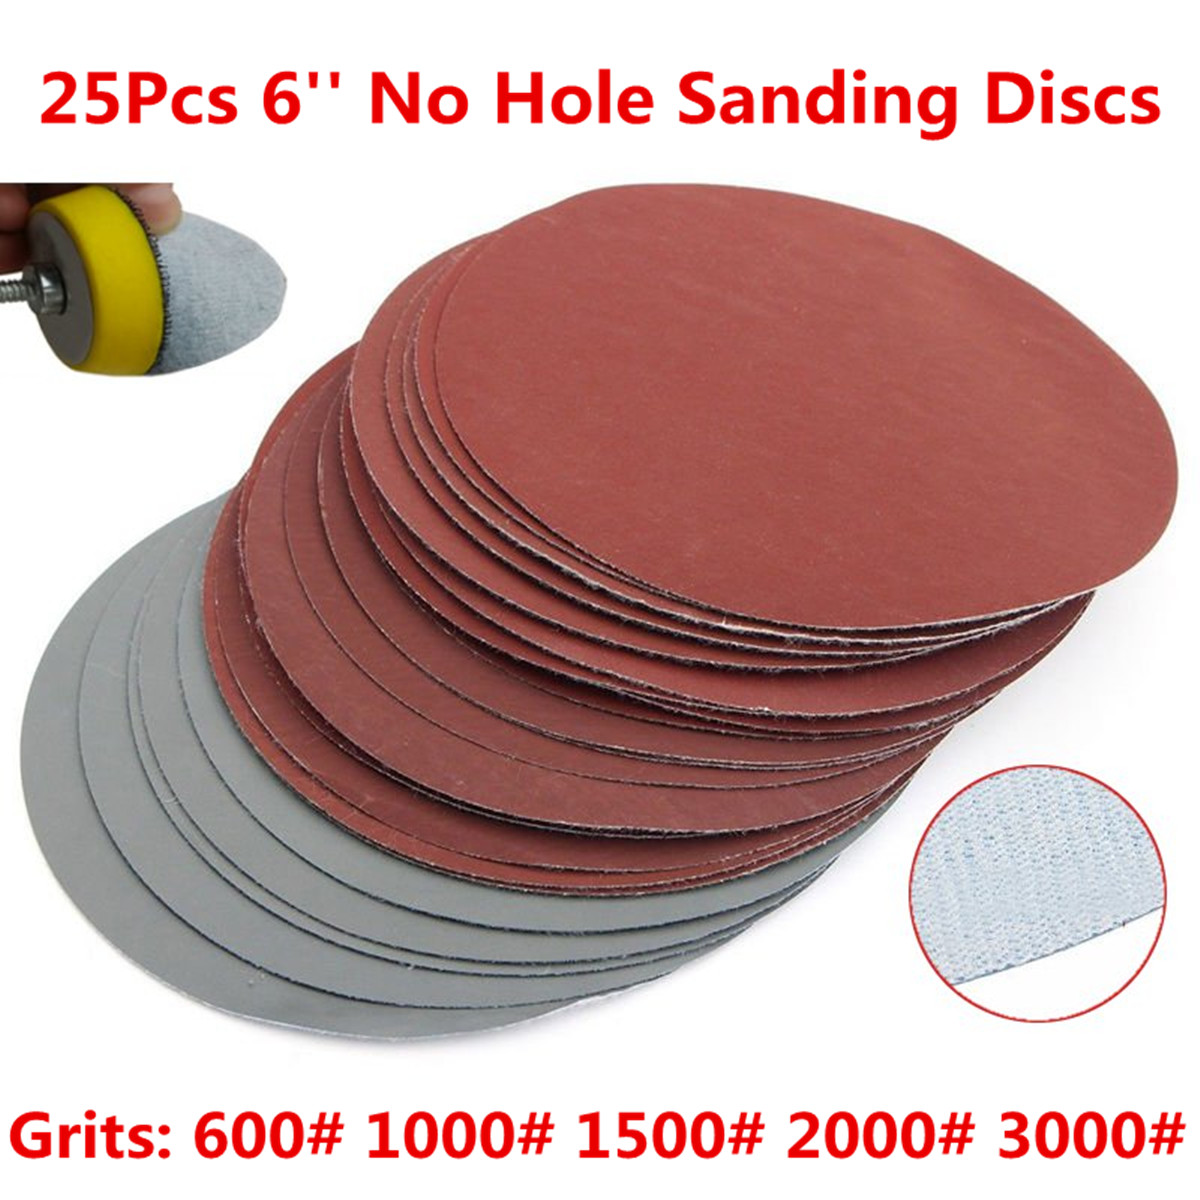 25pcs/Set 6 Inch Round Sandpaper Disk Sand Sheets Grit 600-3000 Hook Loop Sanding Disc For Sander Grits Abrasive Tools 150mm